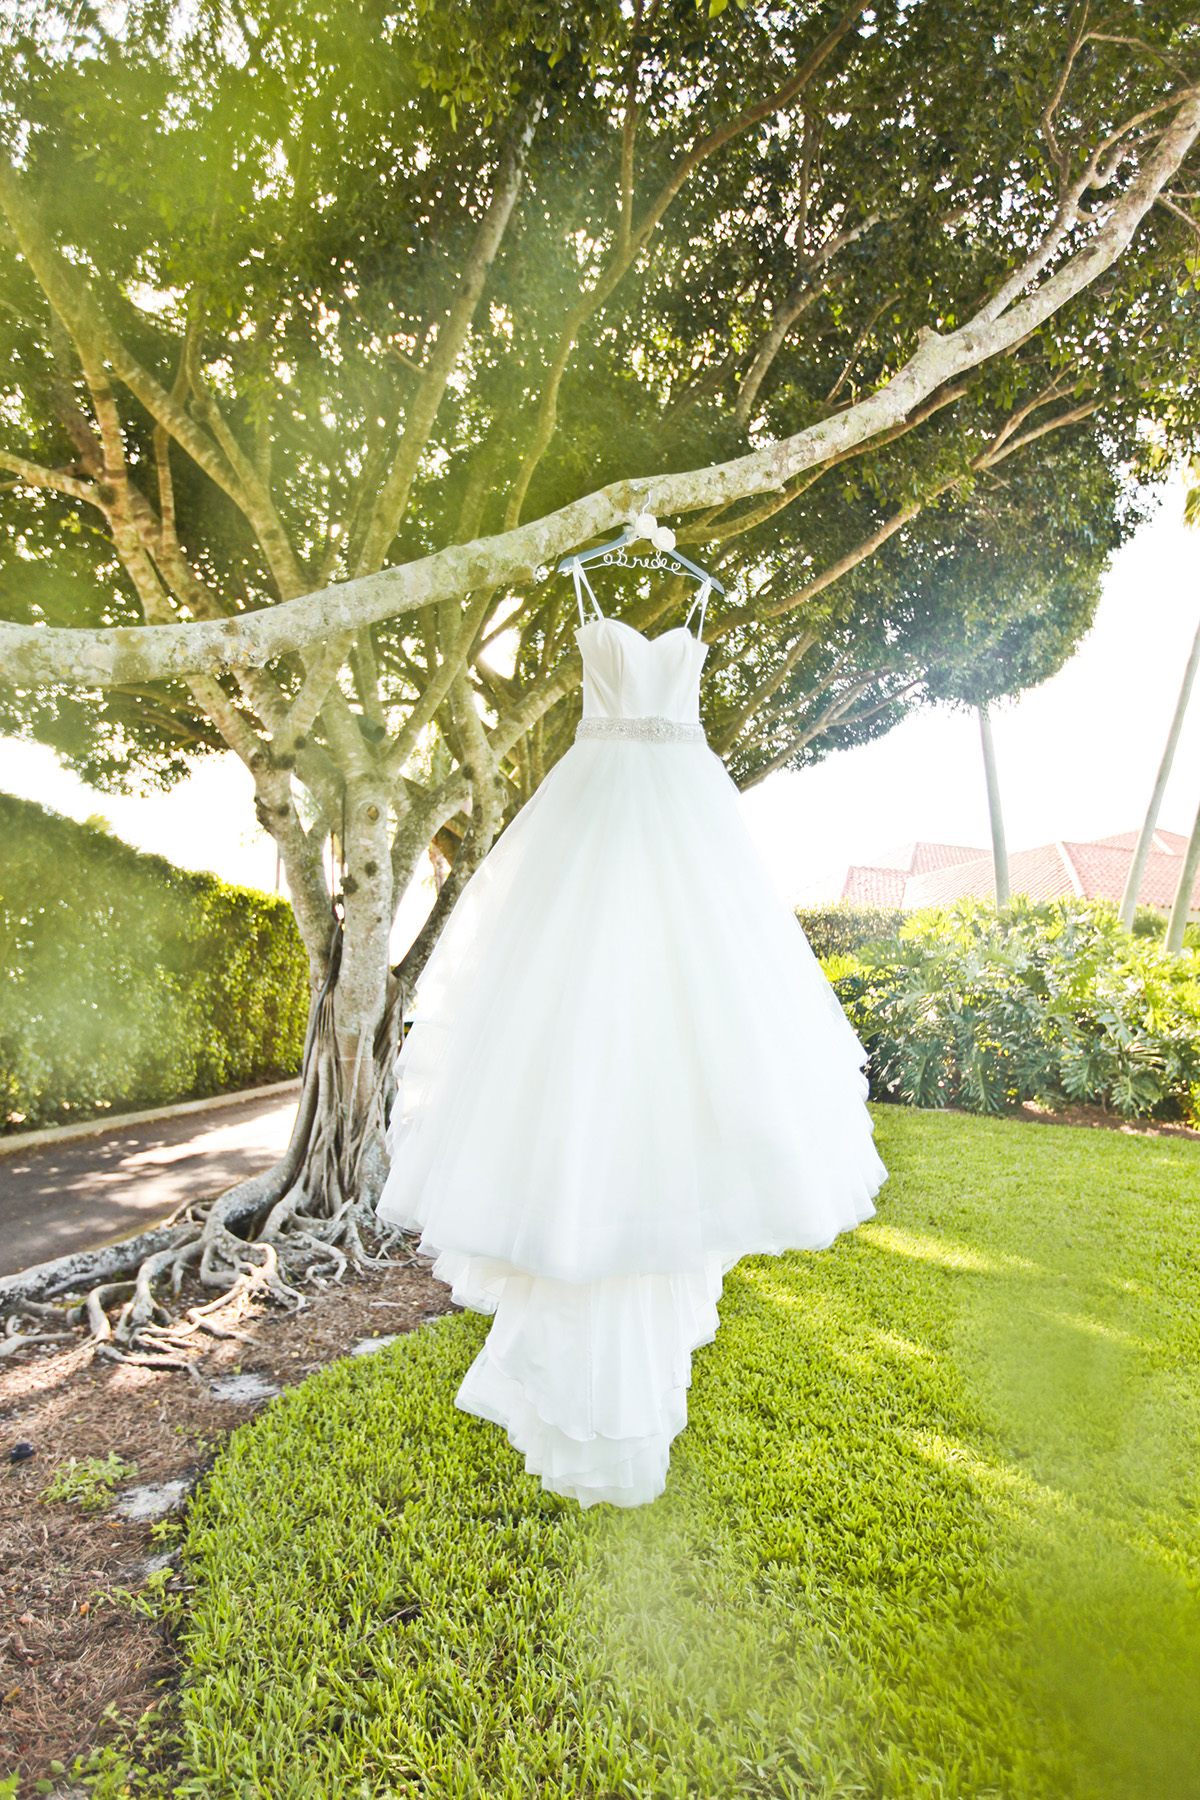 Elegant Bridal Gown | The Majestic Vision Wedding Planning | Breakers West in Palm Beach, FL | www.themajesticvision.com | Krystal Zaskey Photography